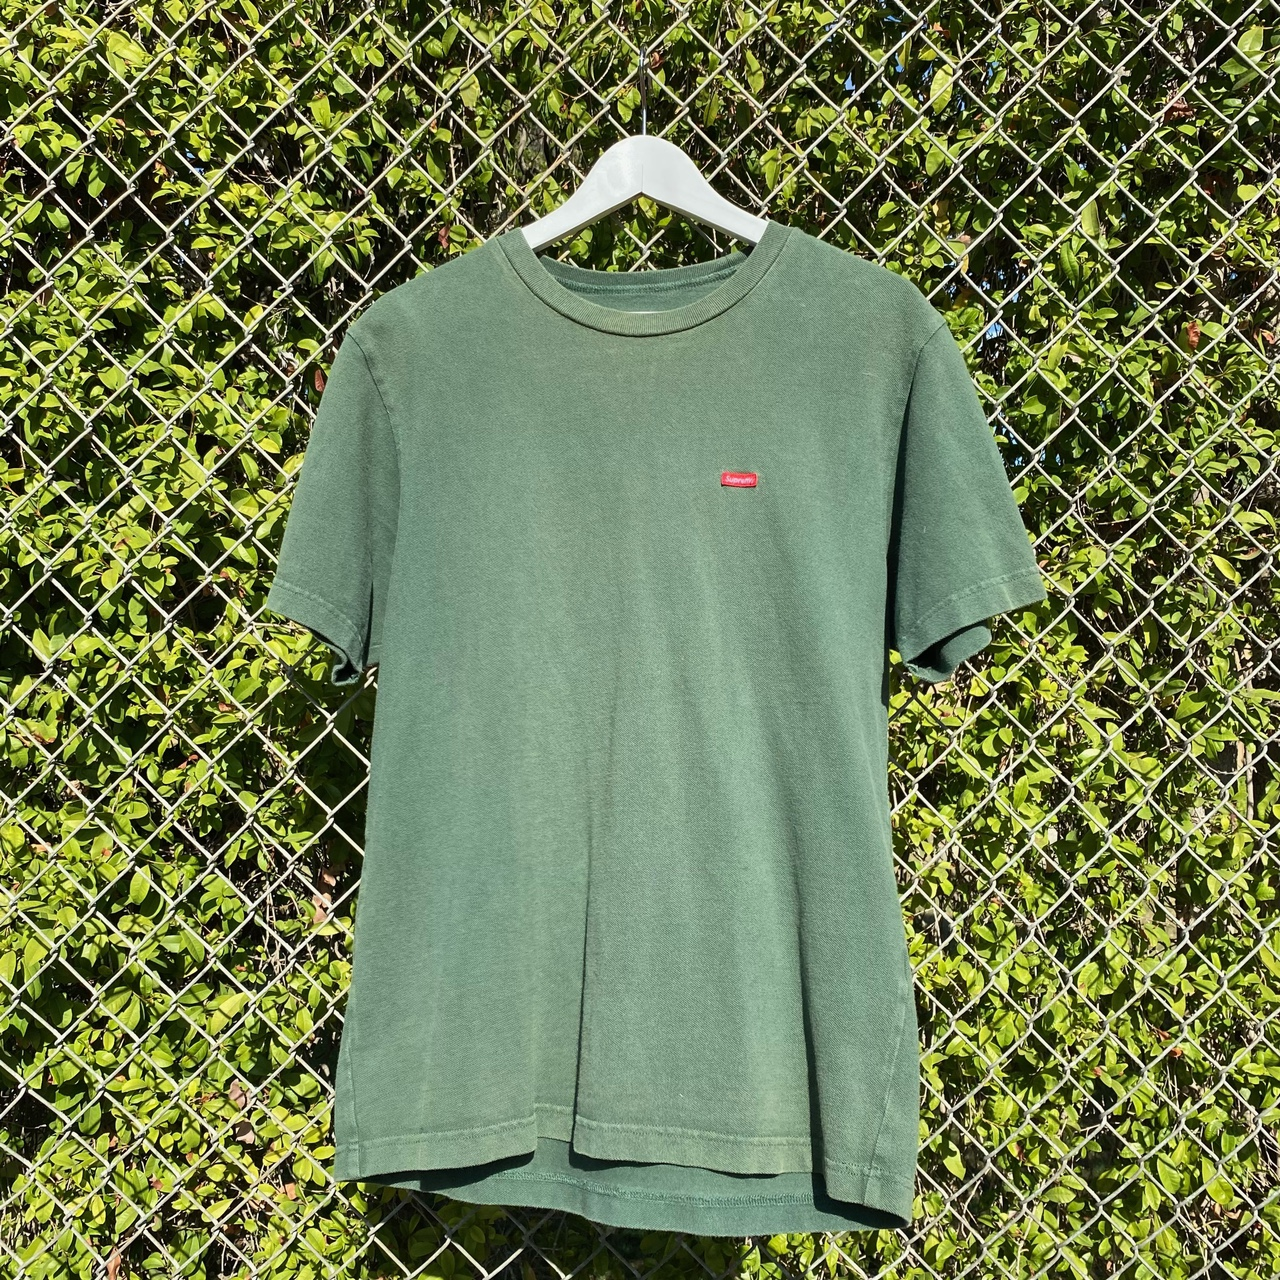 Product Image 1 - Supreme Tee Size Small but fits